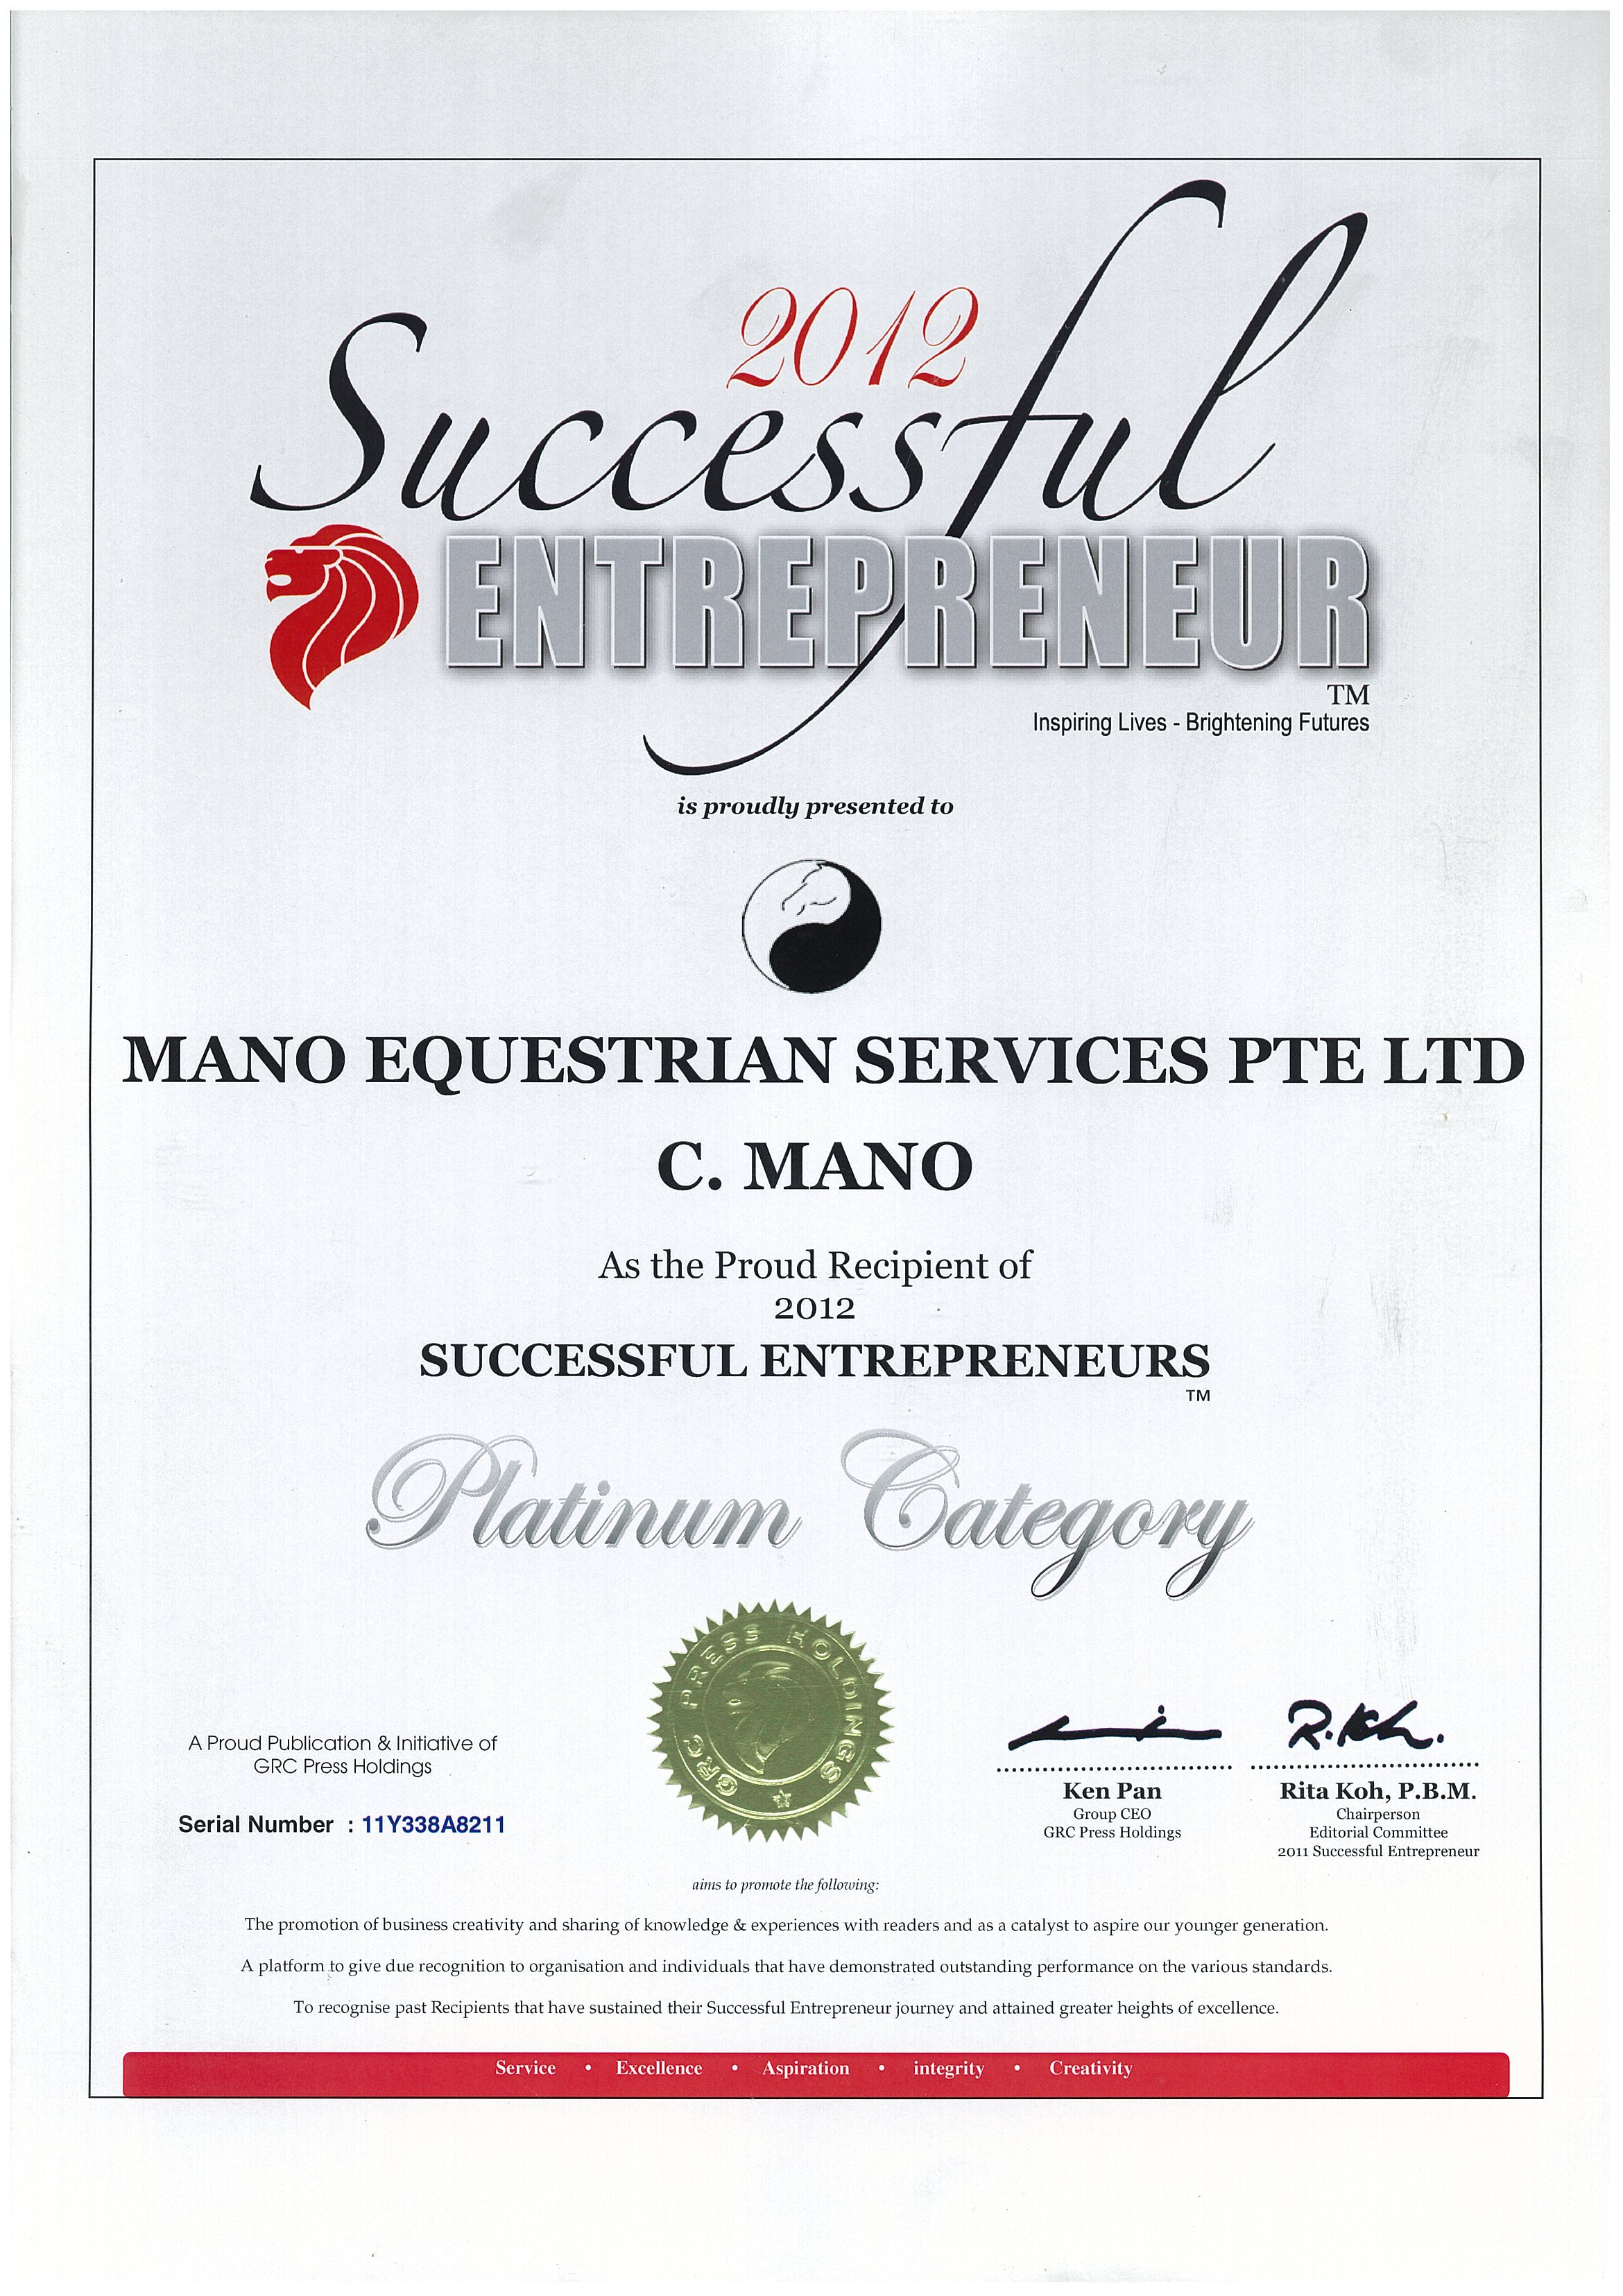 2012 SUCCESSFUL ENTREPRENEUR